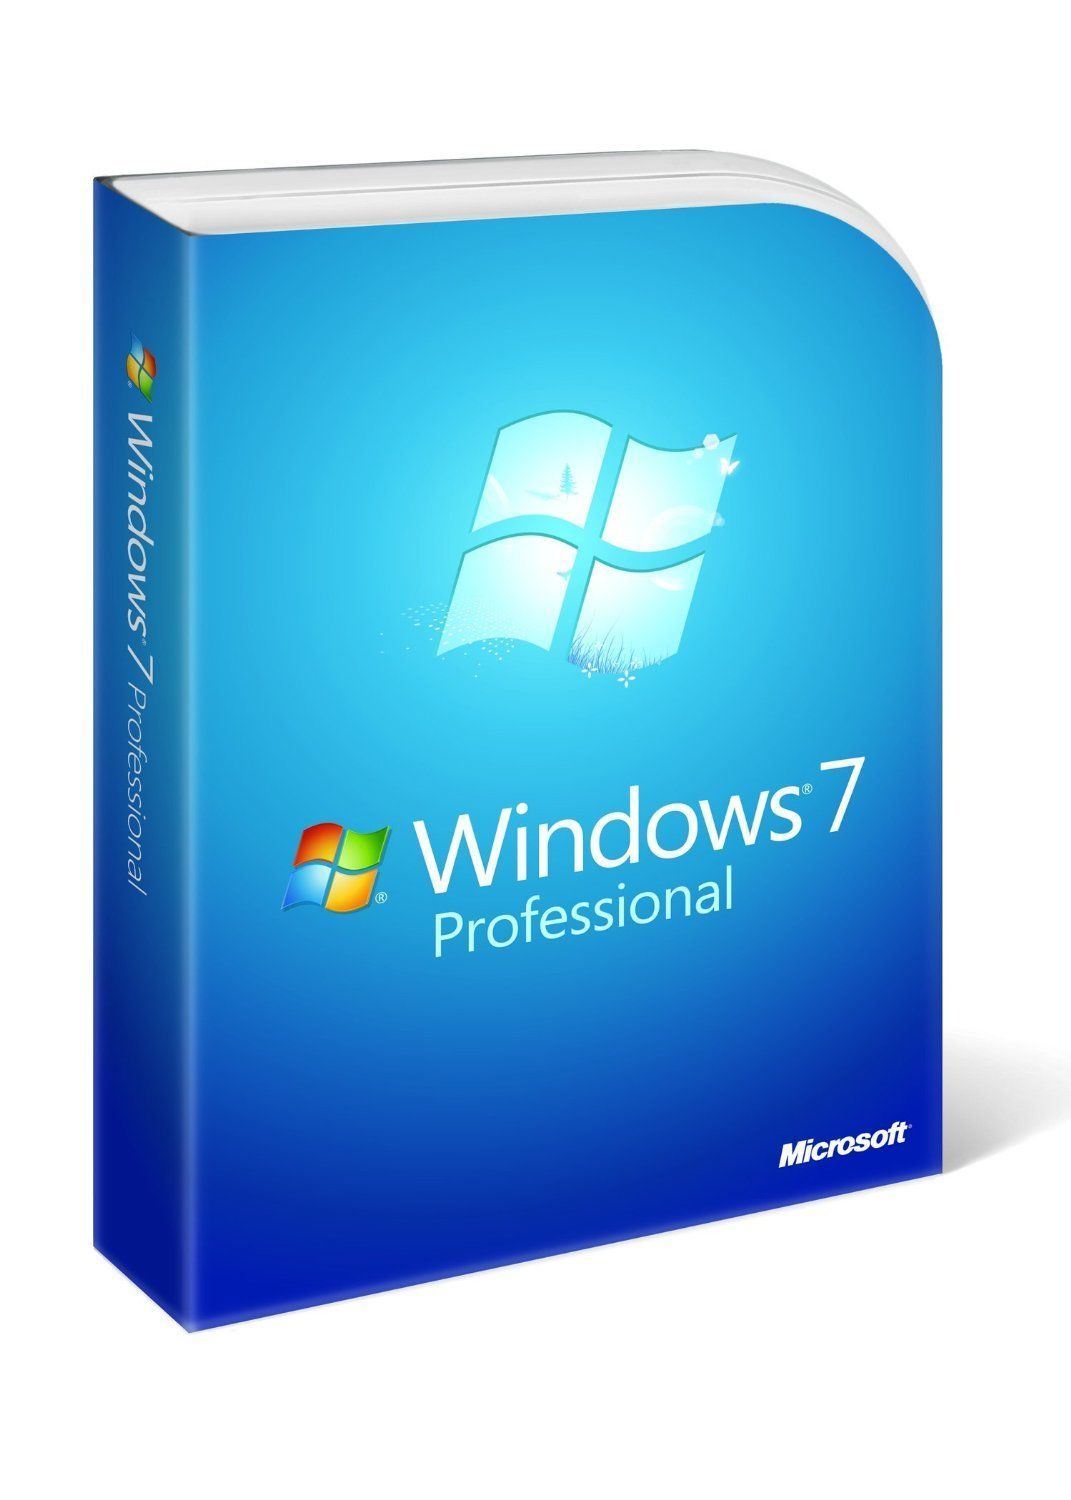 how to download windows 7 professional from microsoft